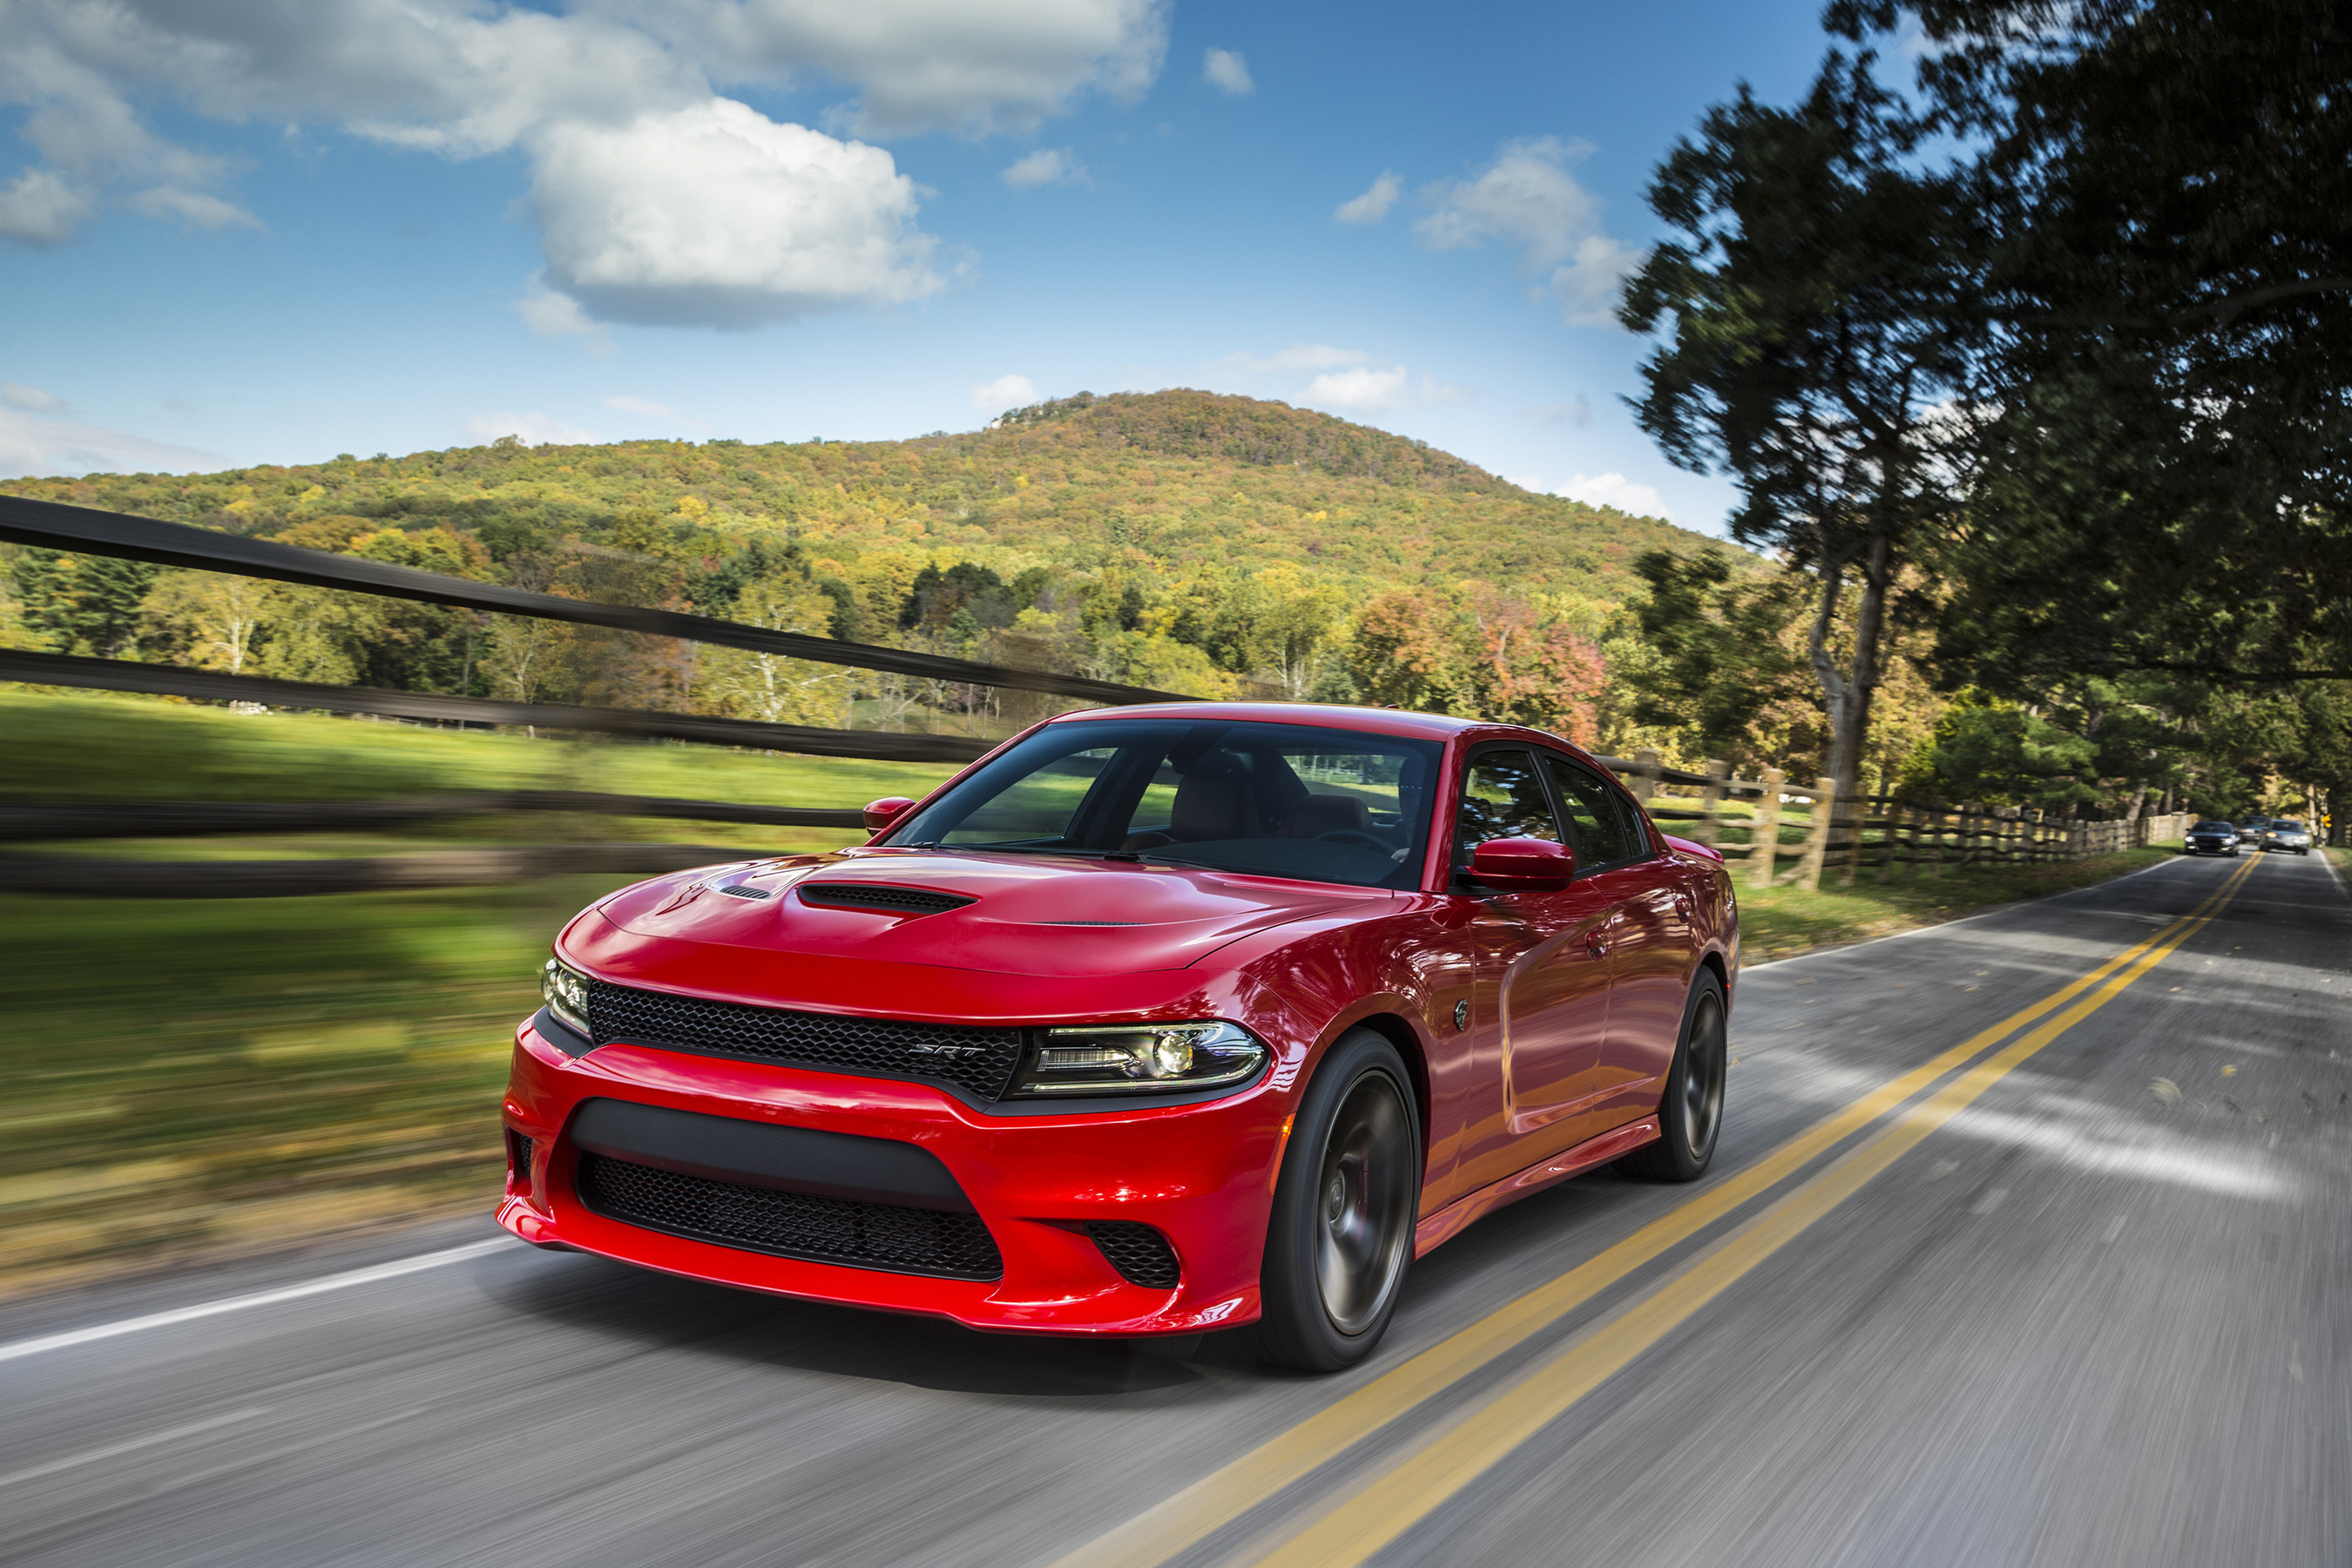 Dodge Charger Gas Mileage >> 707 Horsepower Dodge Charger Srt Hellcat Earns Epa Highway Fuel